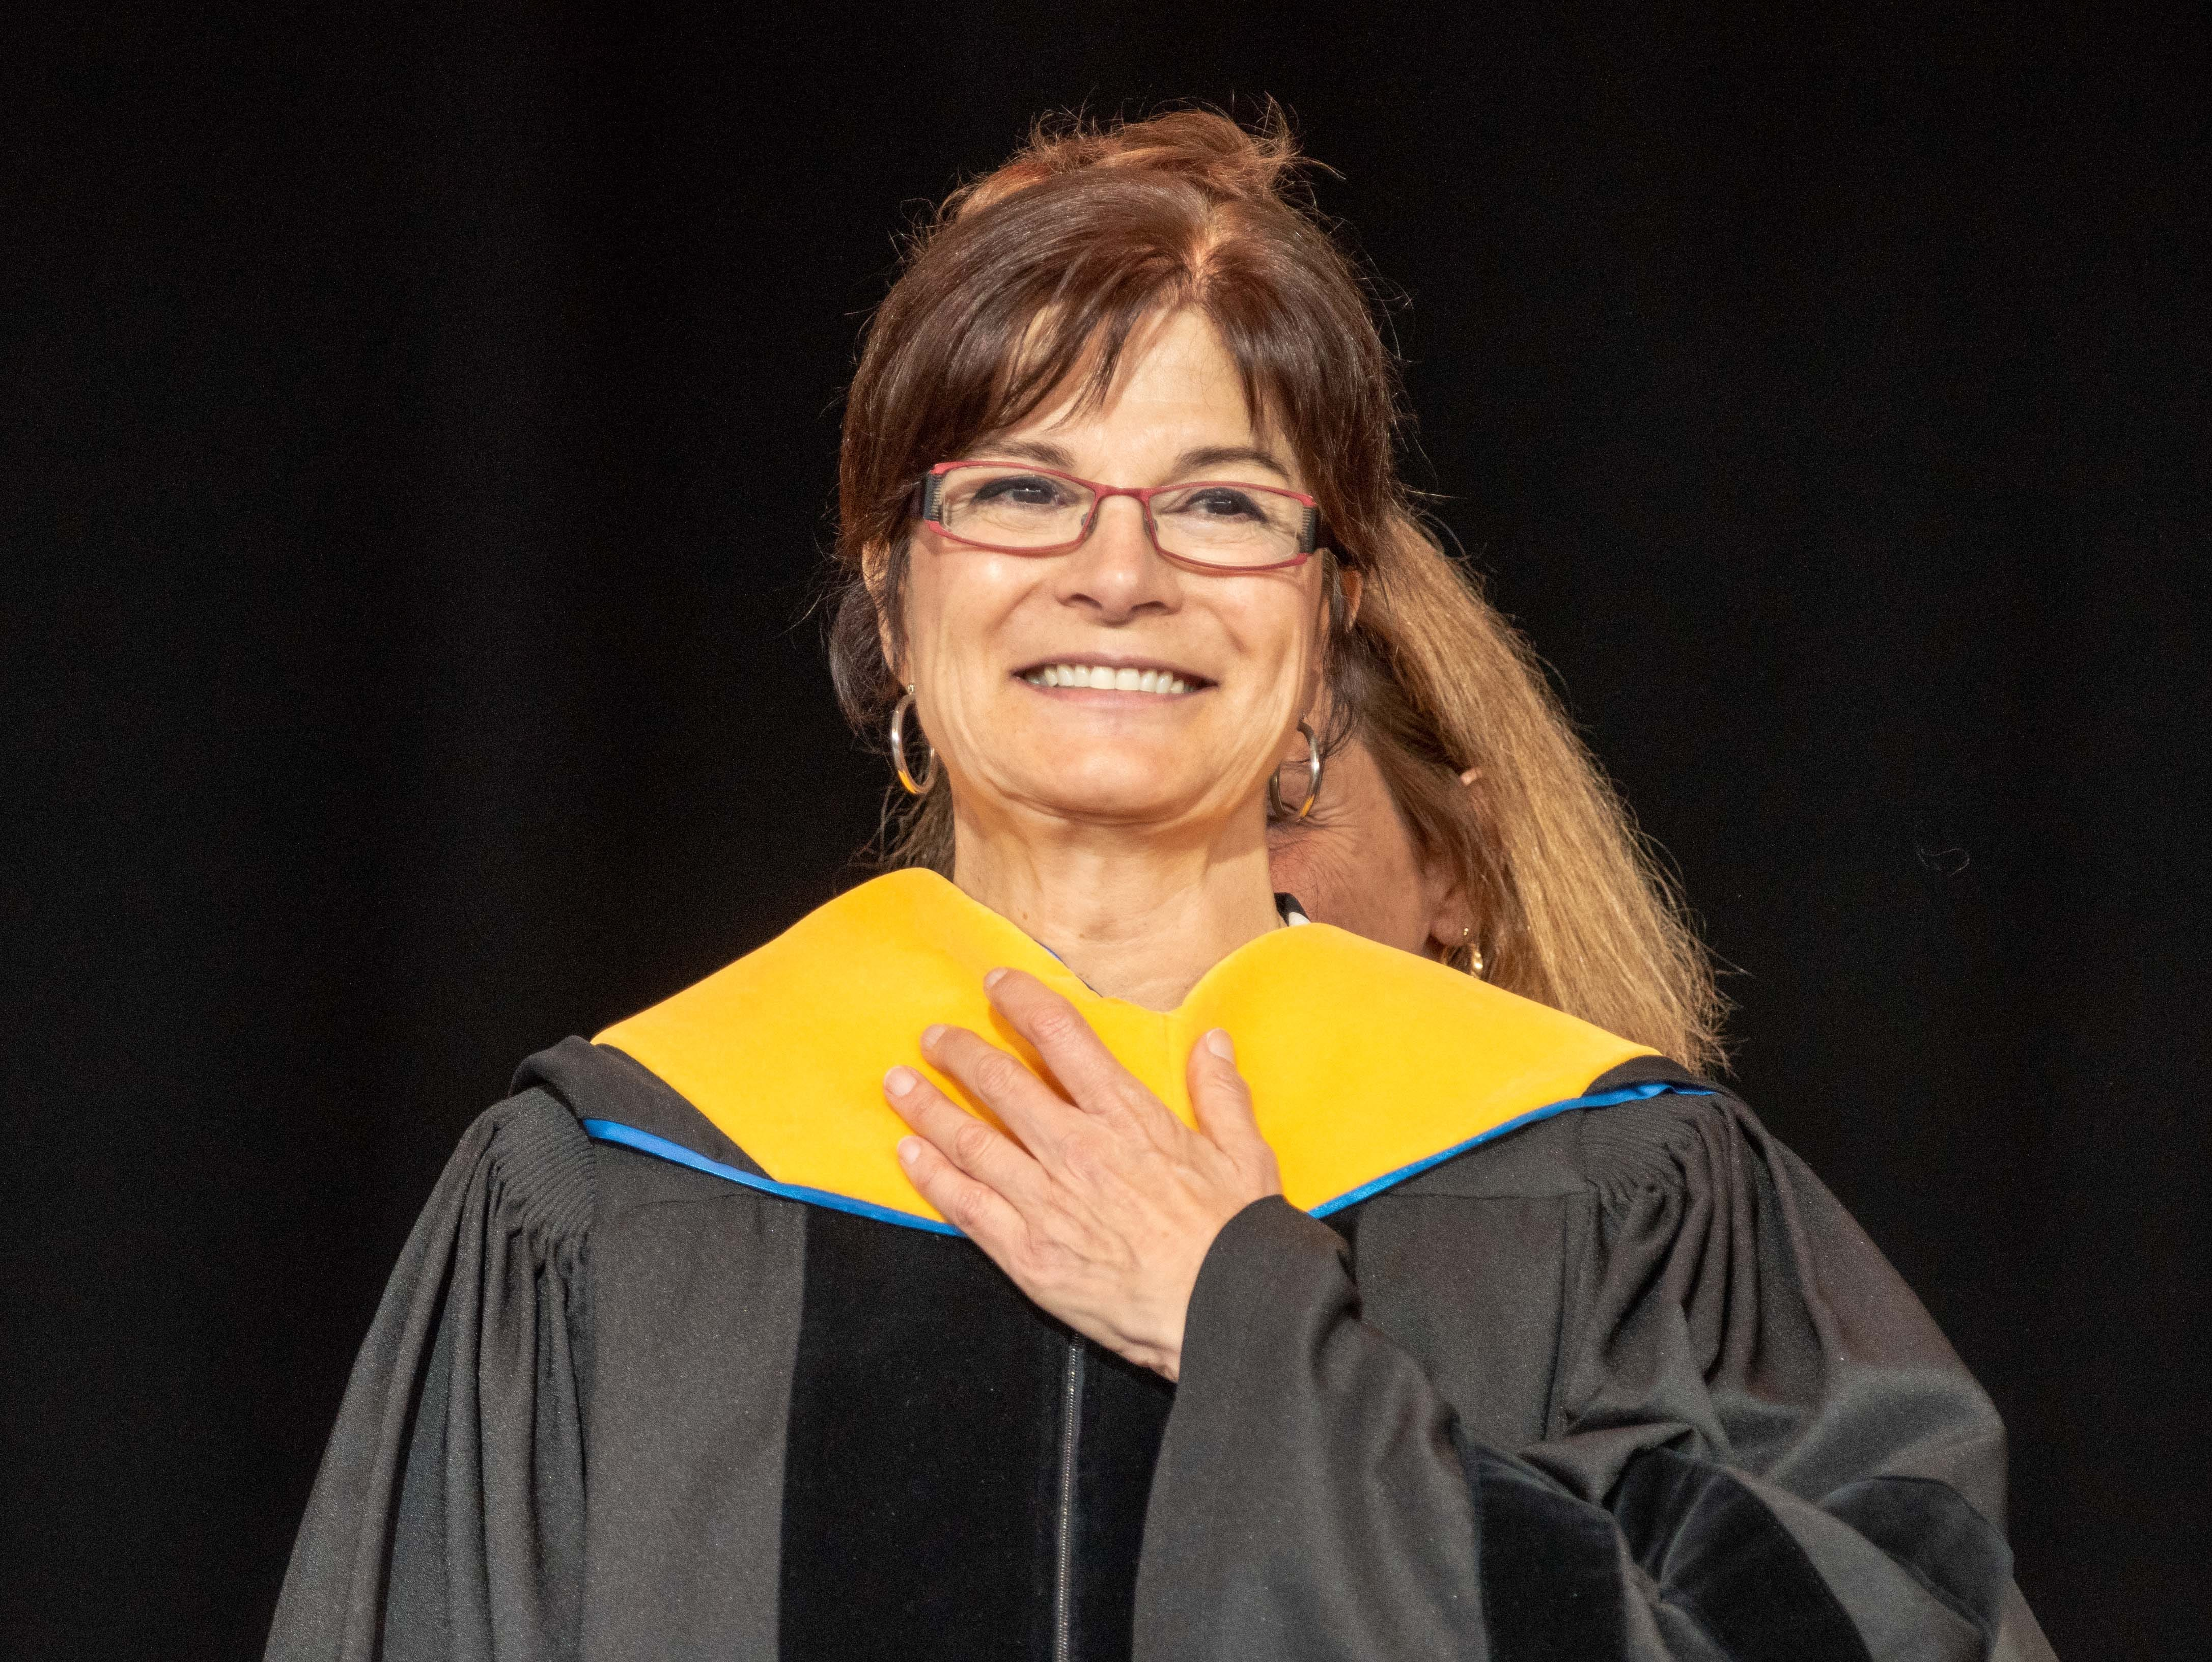 Carolyn Porco, the commencement speaker, received an honorary degree at  the Monmouth University undergraduate commencement for the class of 2019 at PNC Bank Arts Center, Holmdel, on May 15, 2019.